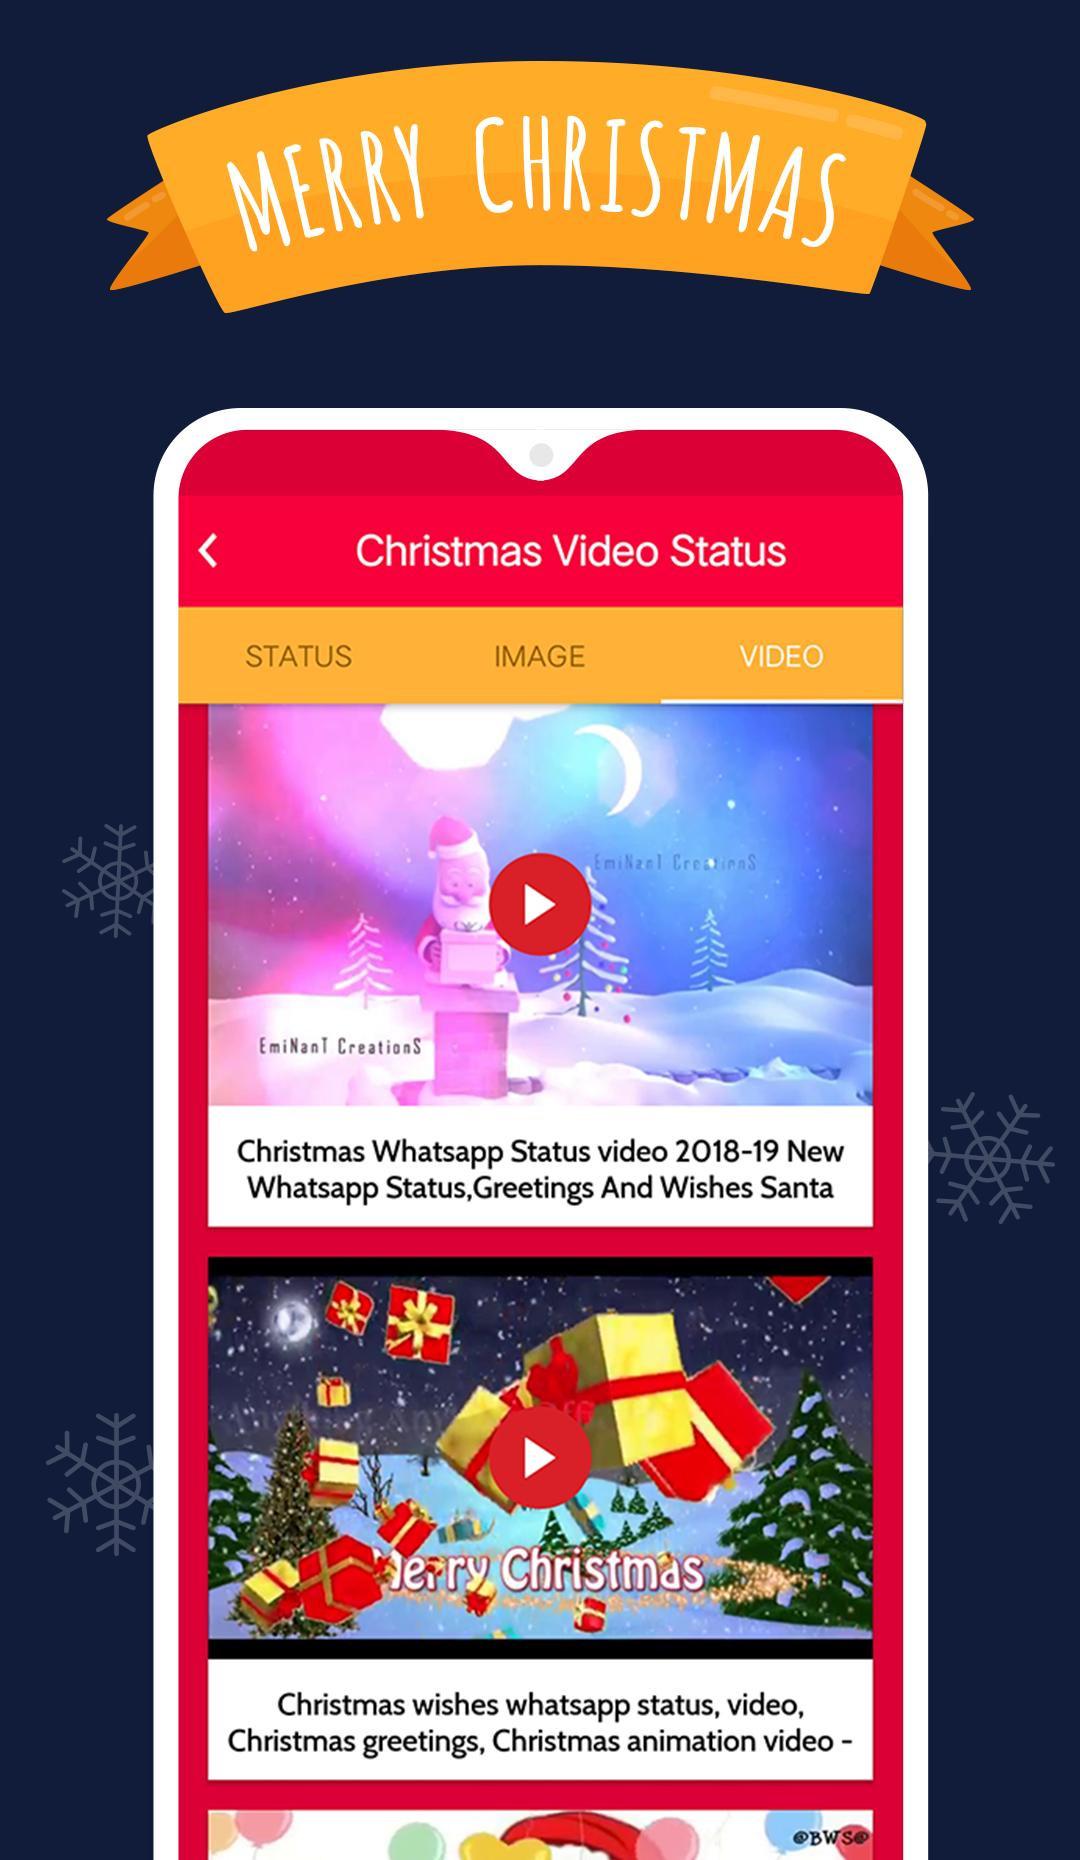 Happy Christmas Video And Status 2018 For Android Apk Download